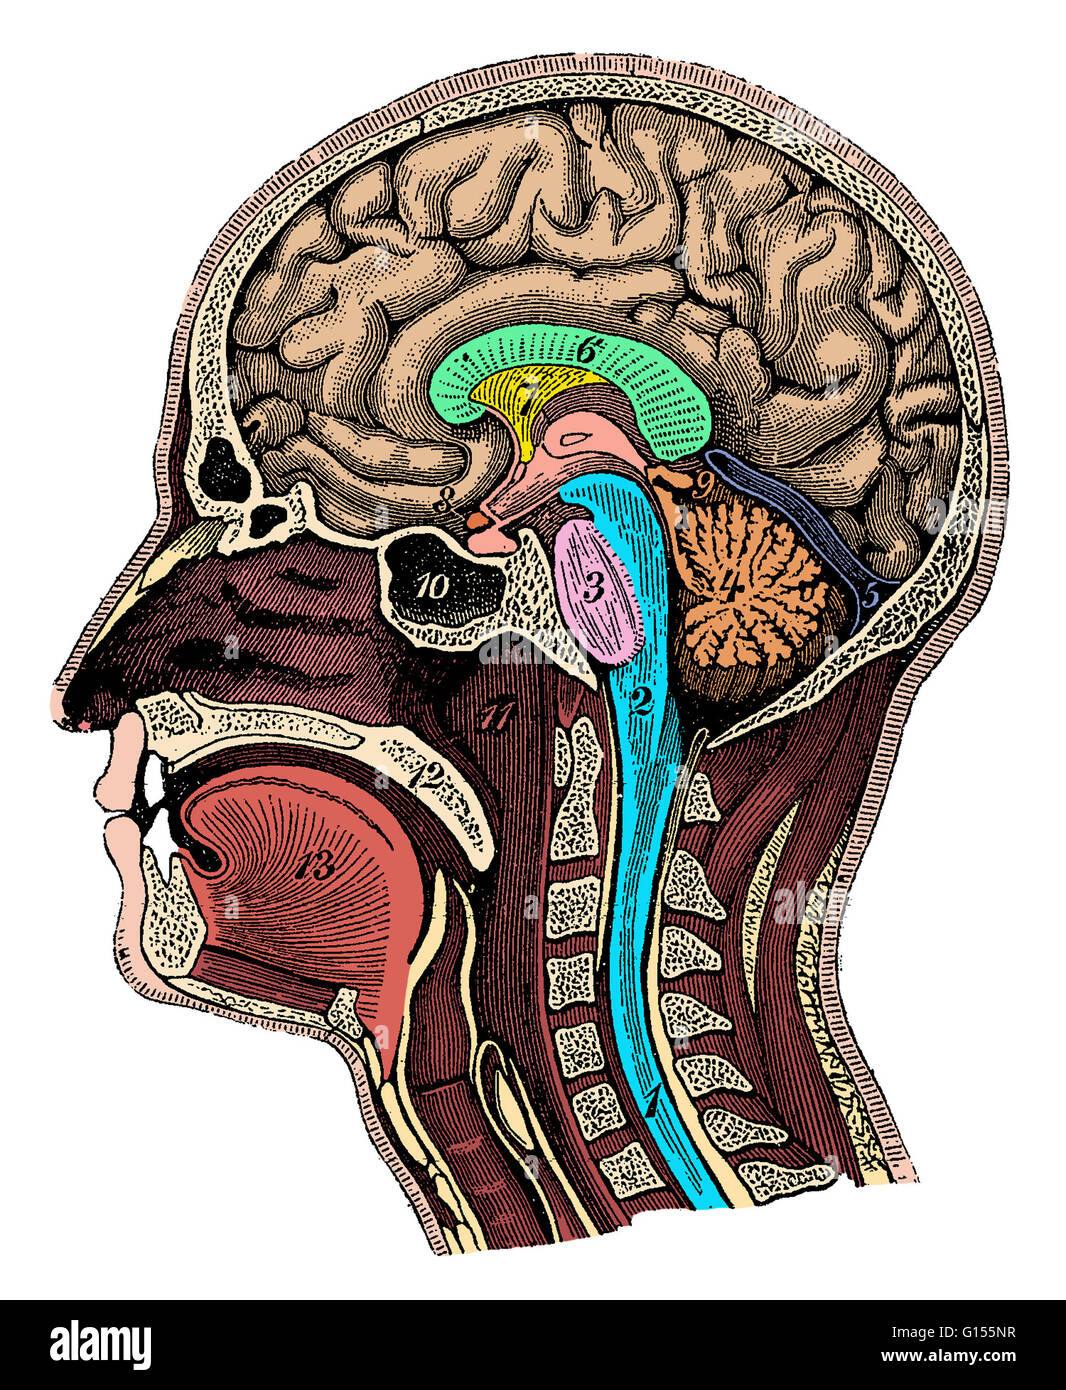 Color enhanced illustration of a cross-section of the head showing ...